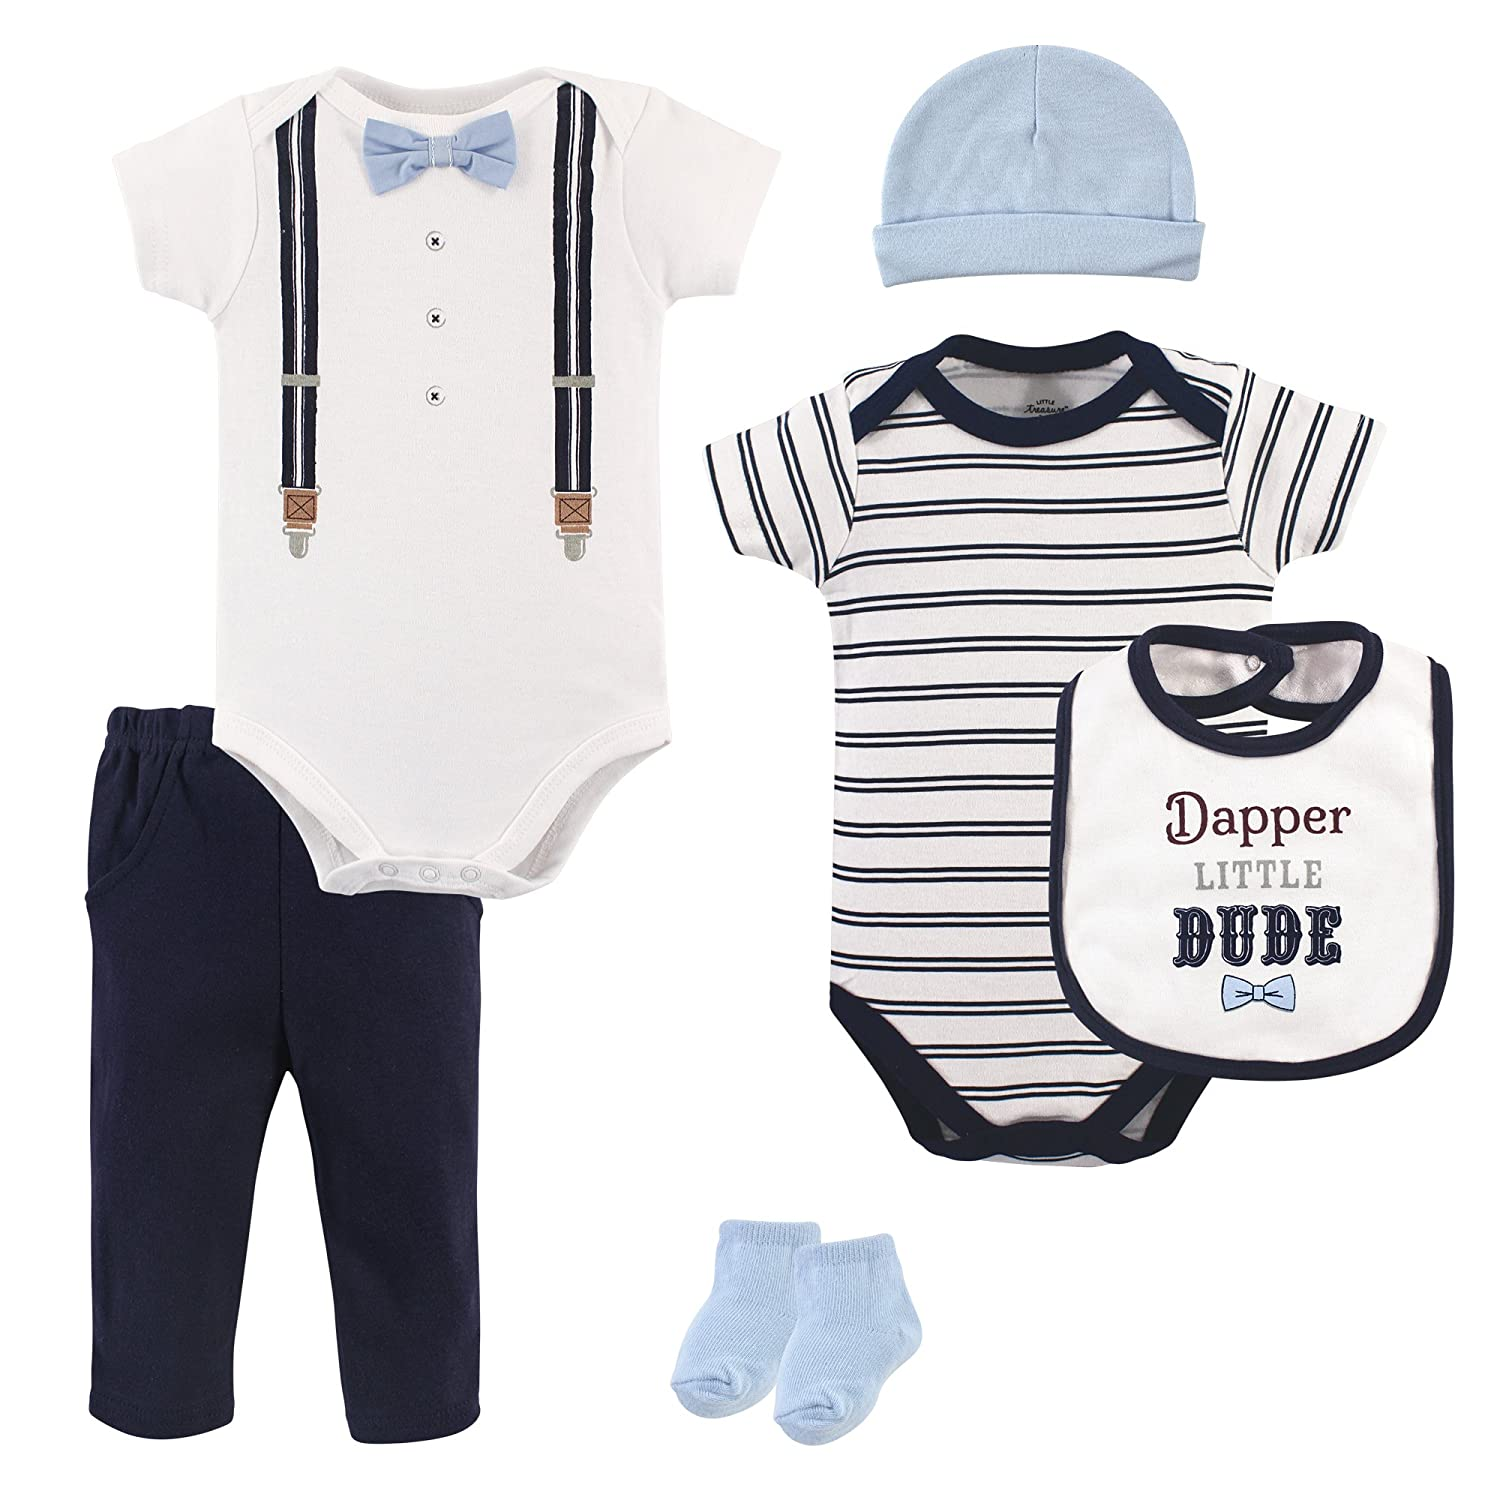 Little Treasure Unisex-Baby Baby 6 Piece Clothing Set 10171274